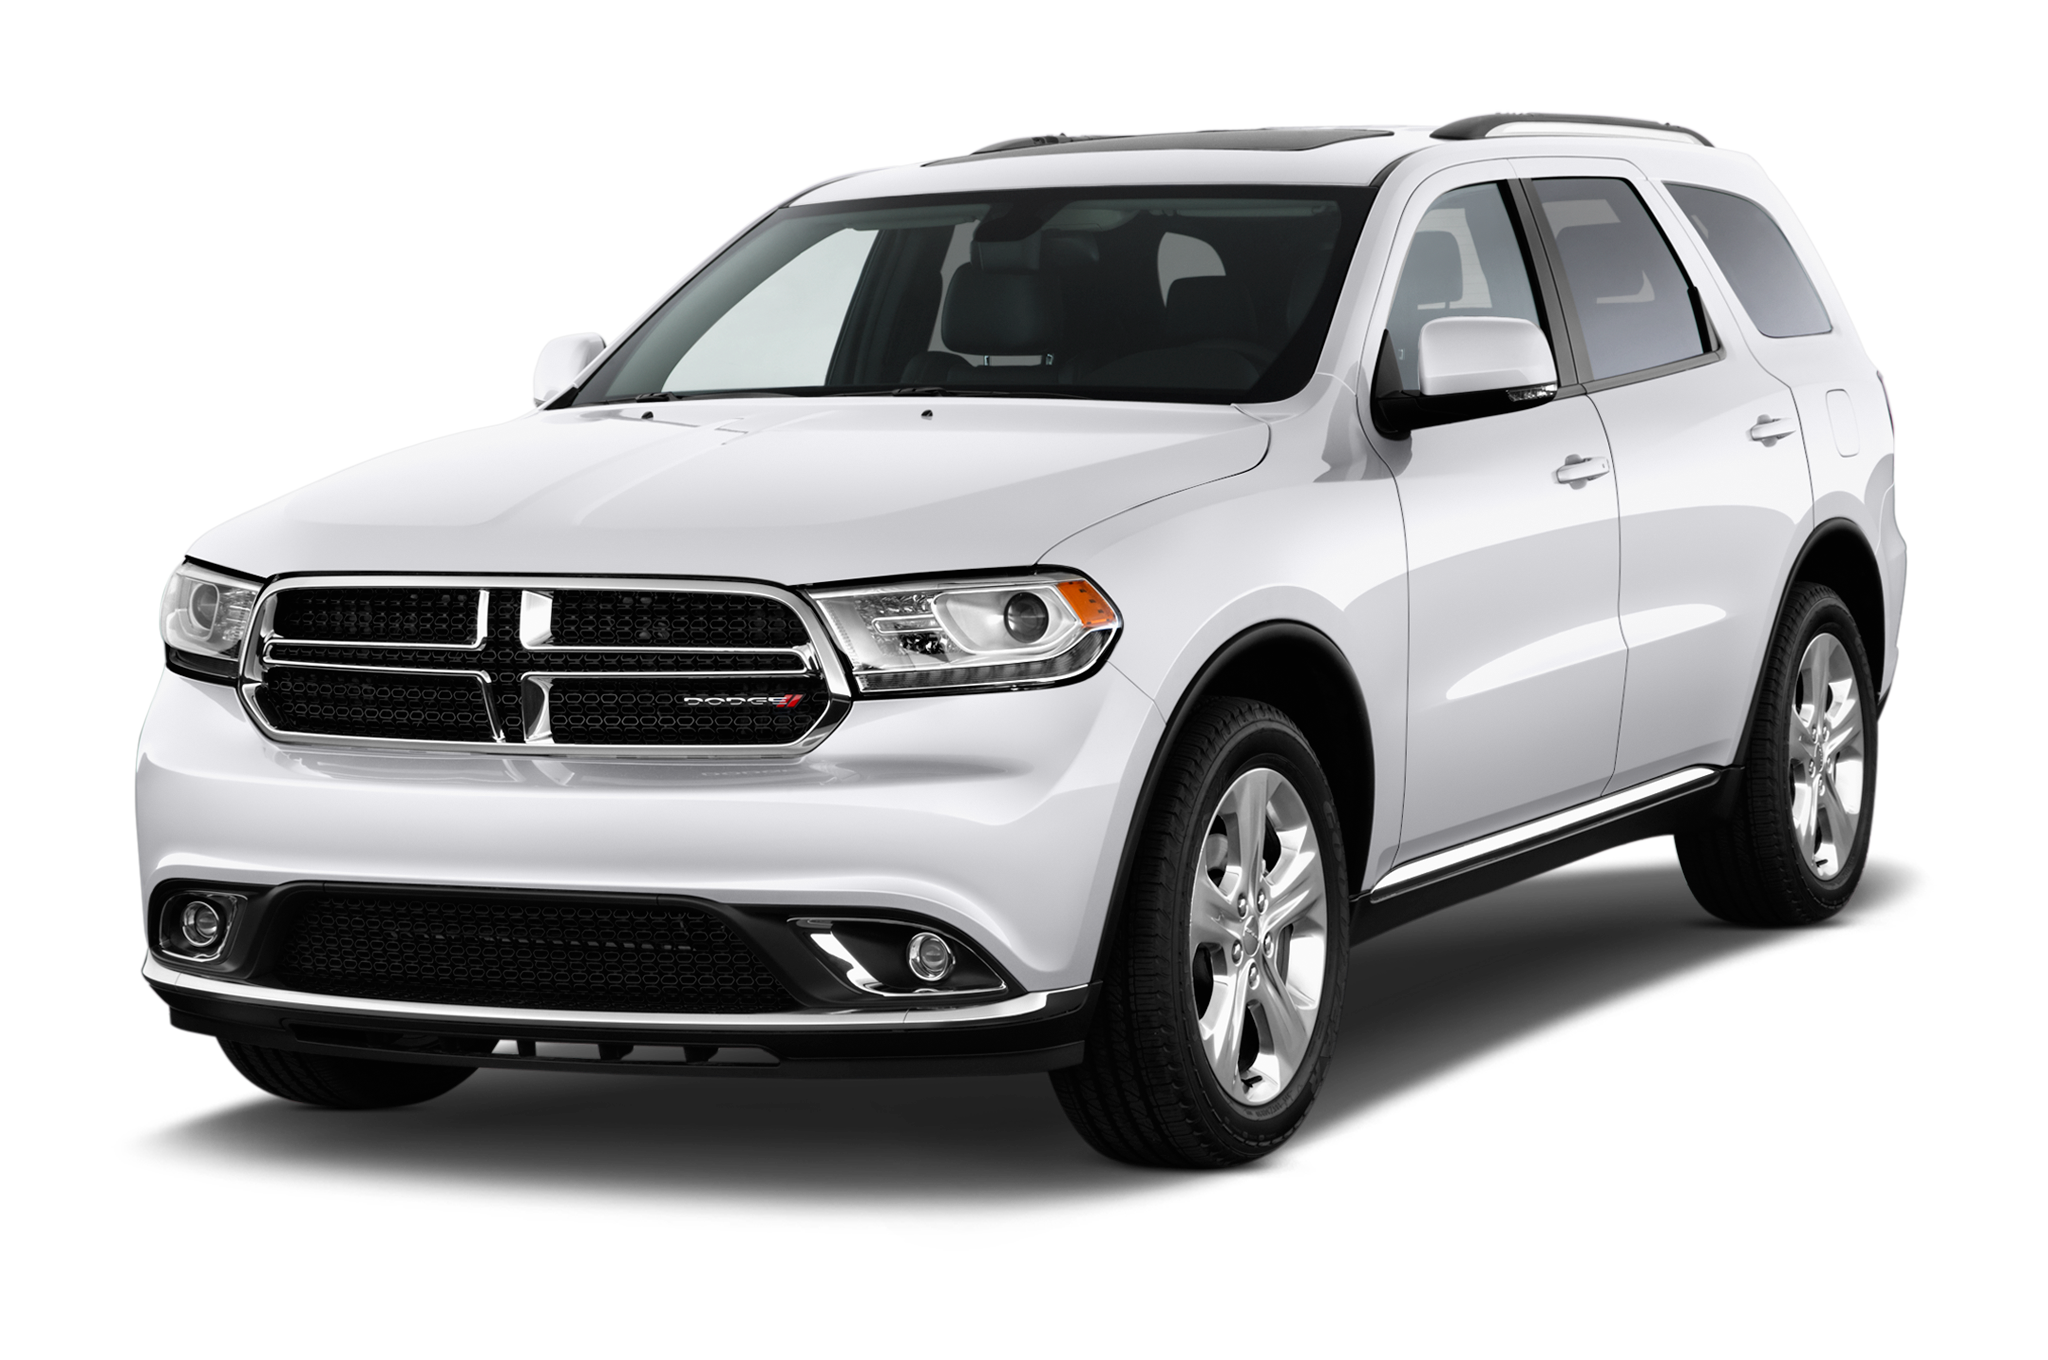 Dodge Images. 2014 dodge durango reviews and rating motor ...